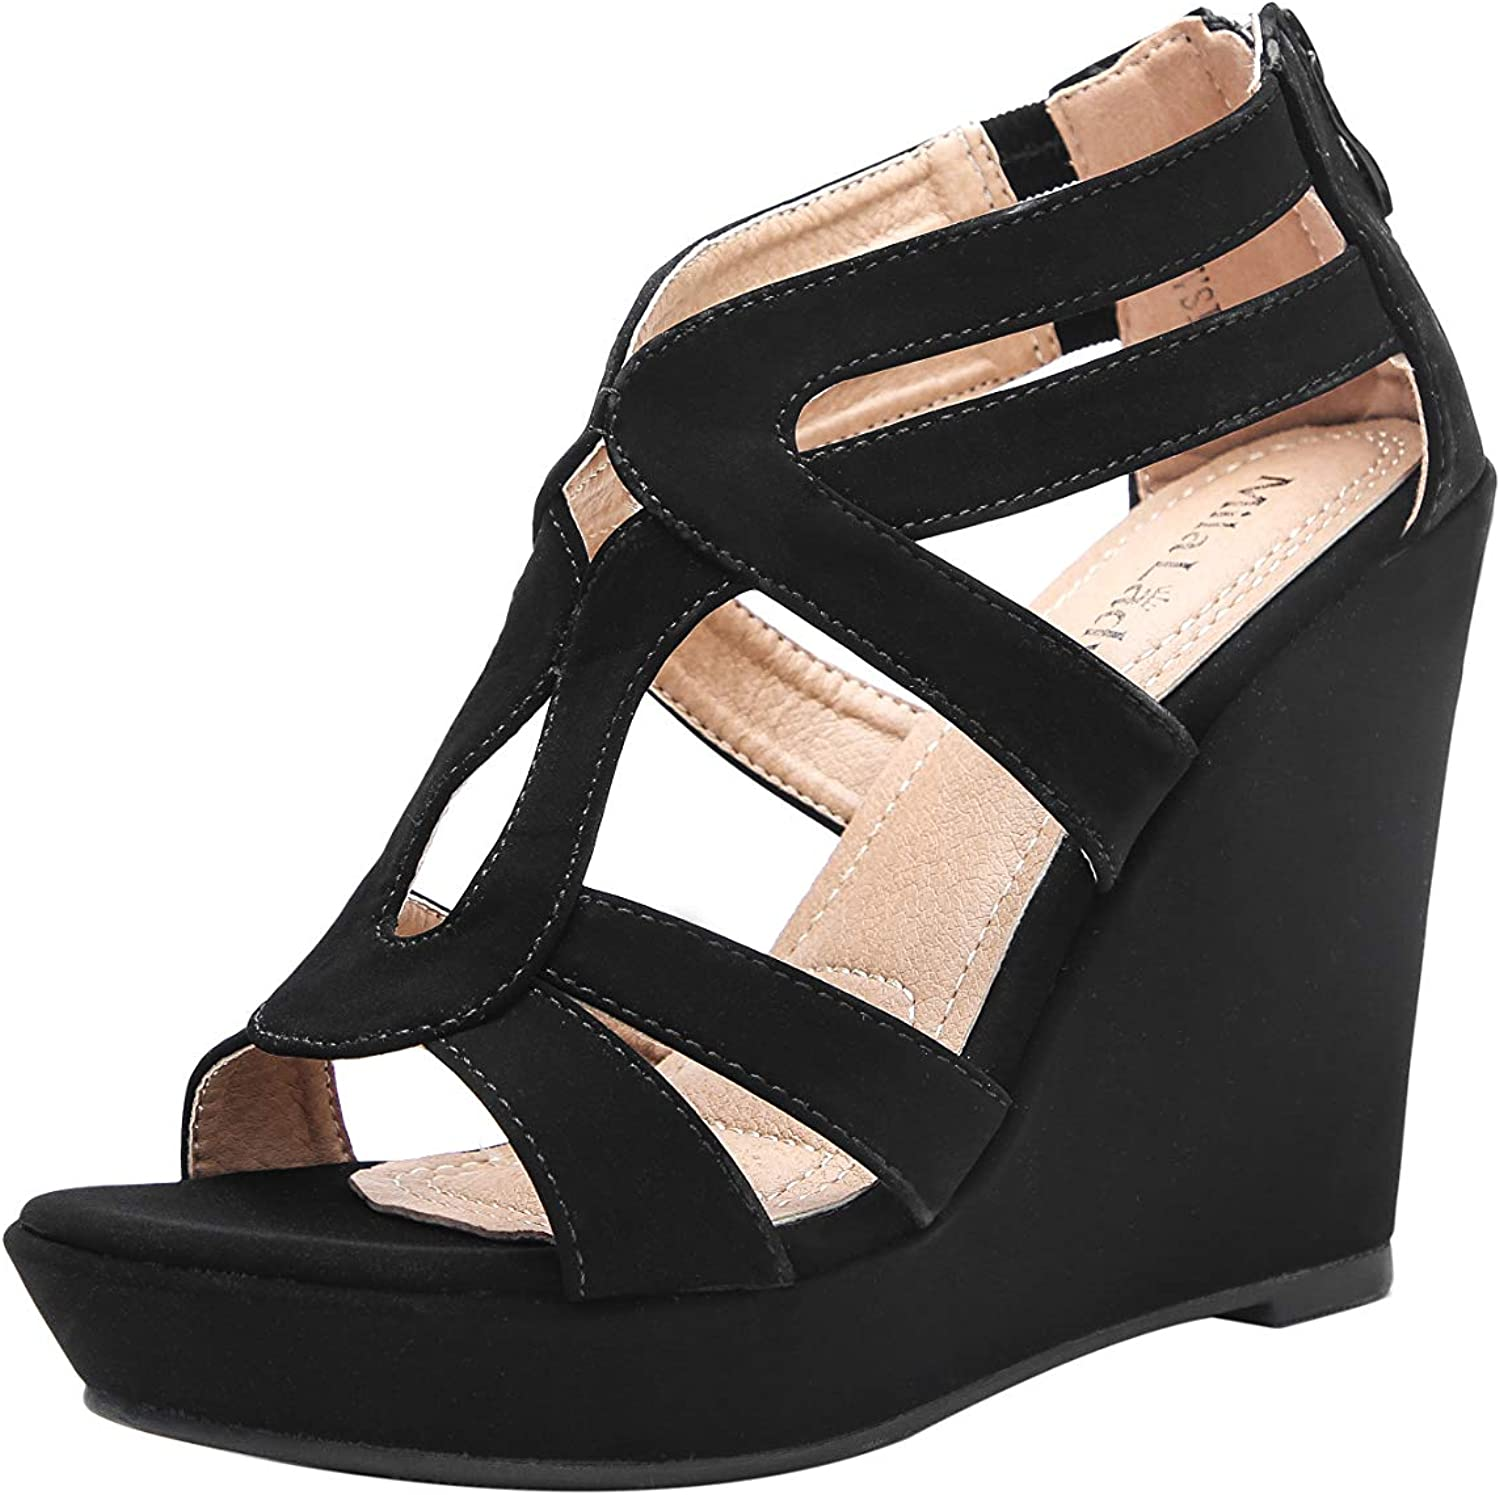 Max 56% OFF Ashley A A-LISA40 Zippered Strappy Heel Wedges Platform Open Toe Sale Special Price